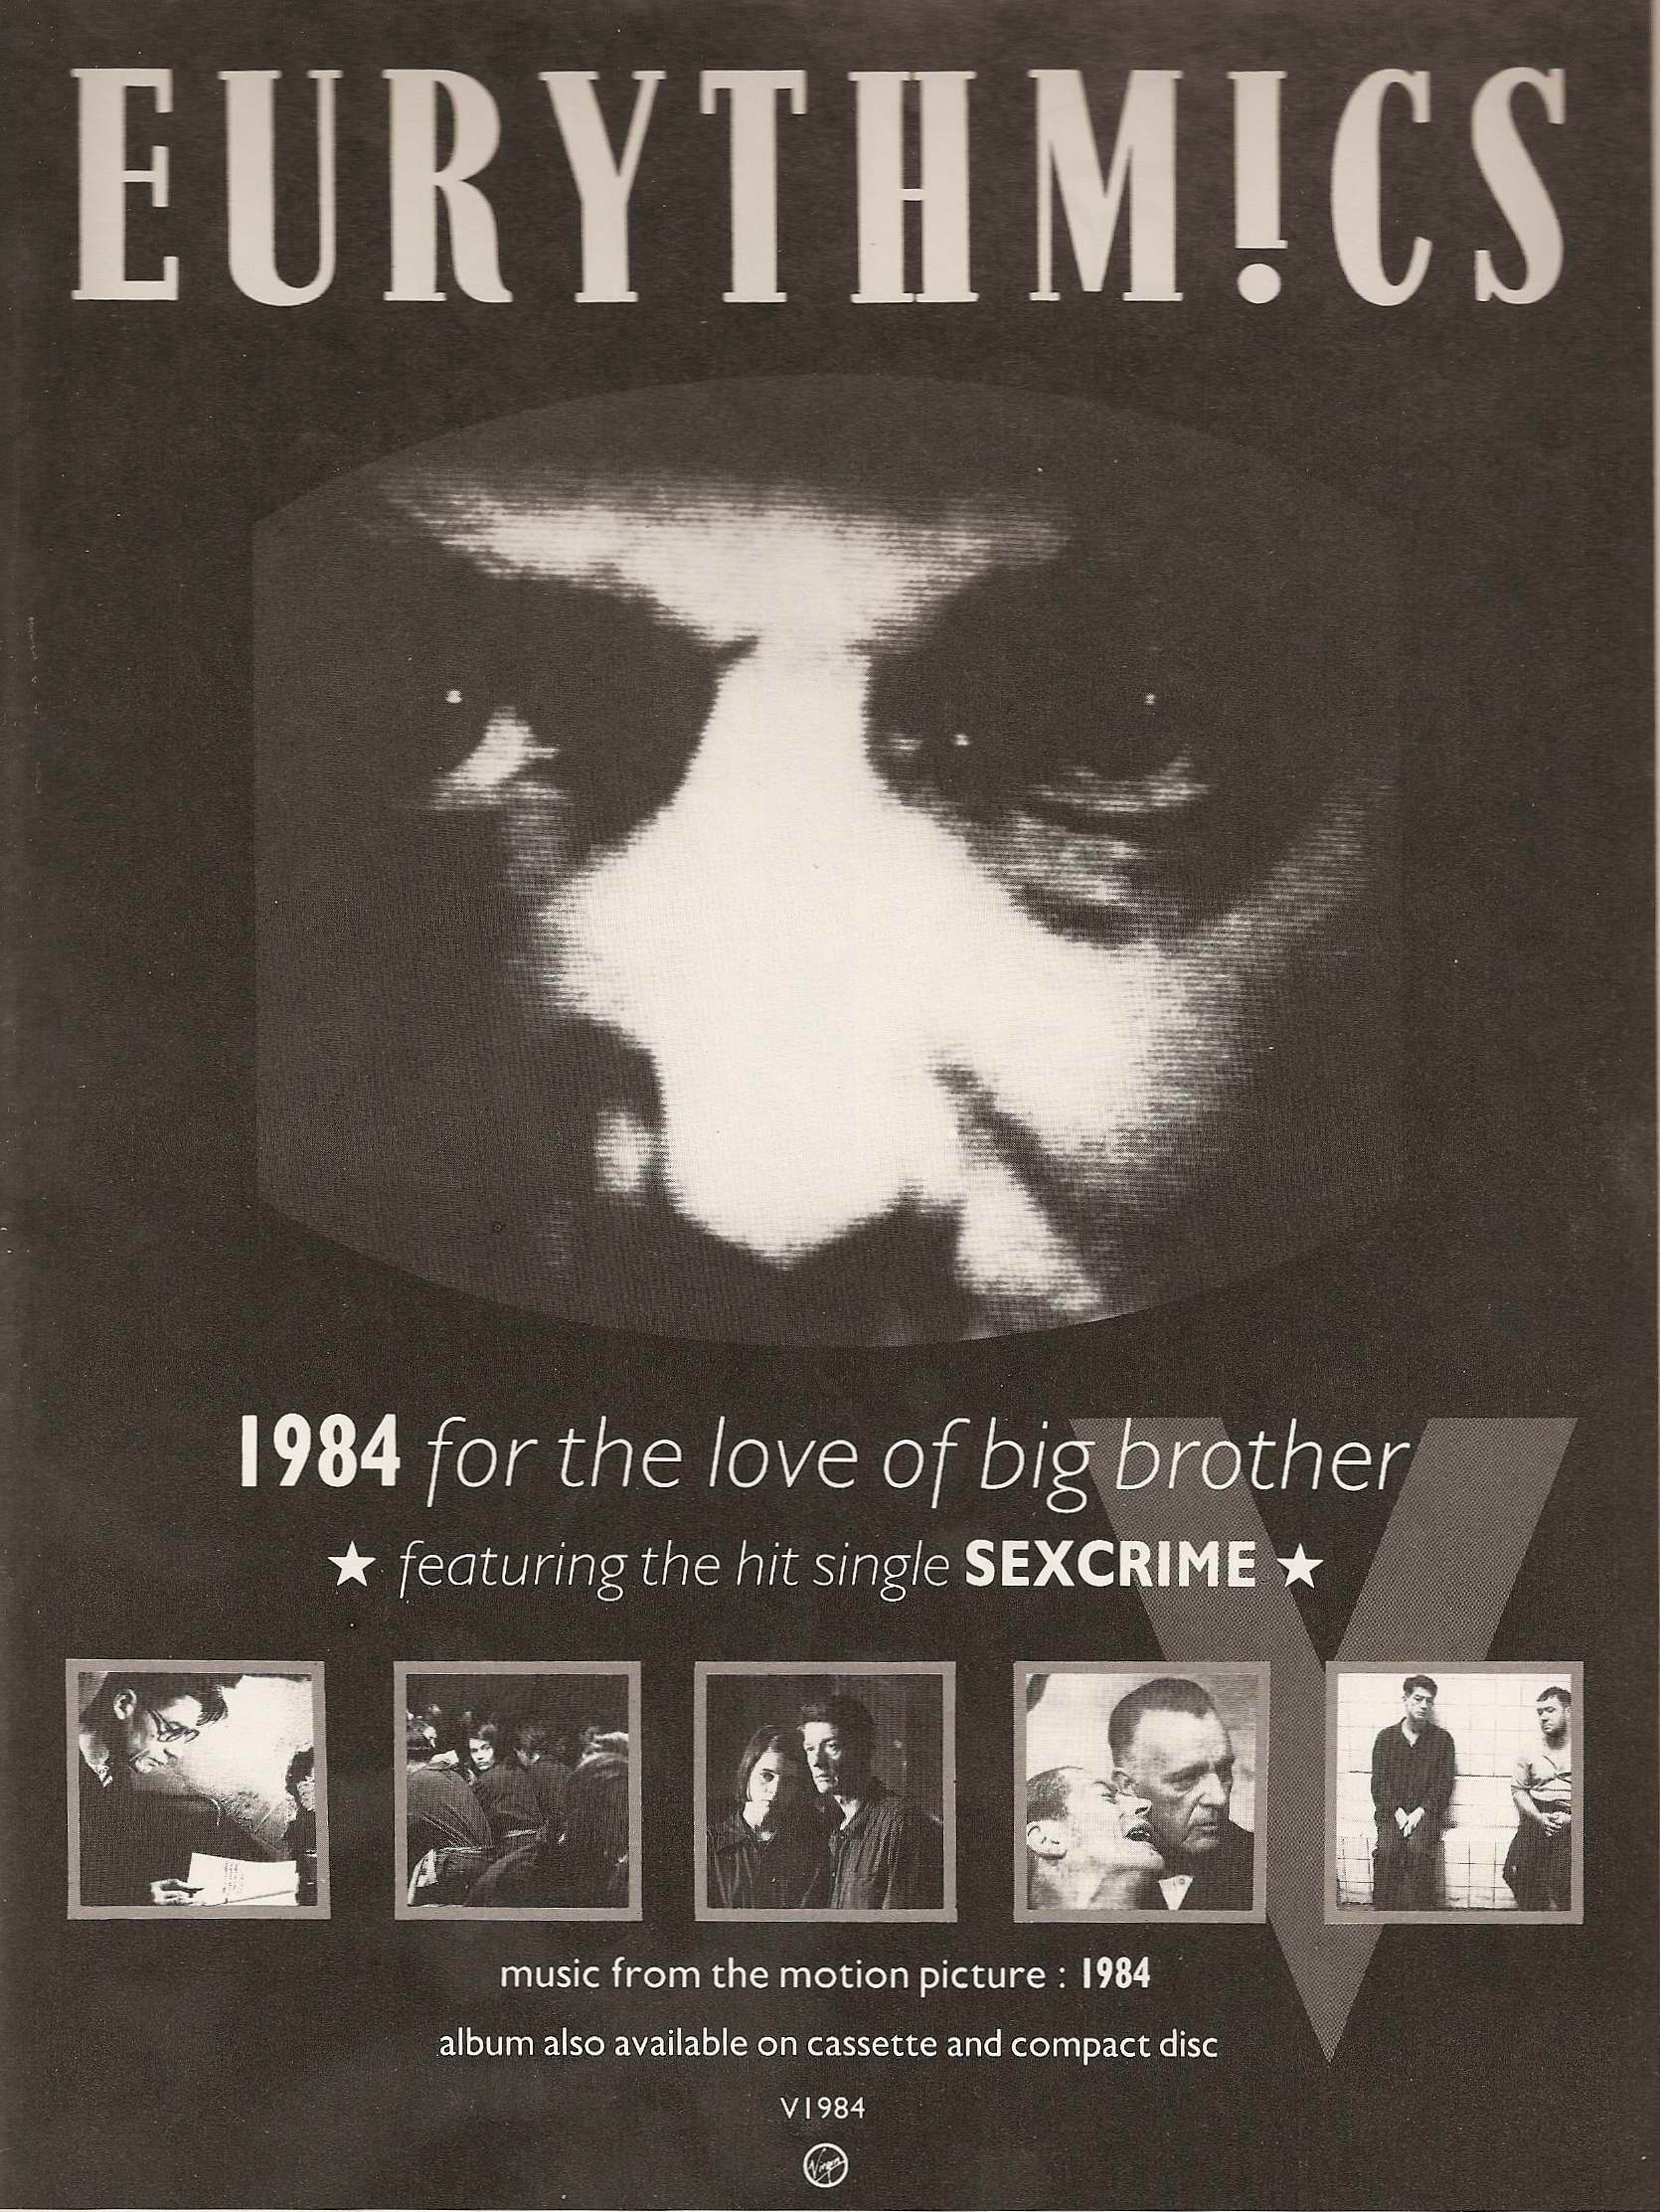 Advert Of The Week: Eurythmics 1984 For The love Of Big Brother Soundtrack